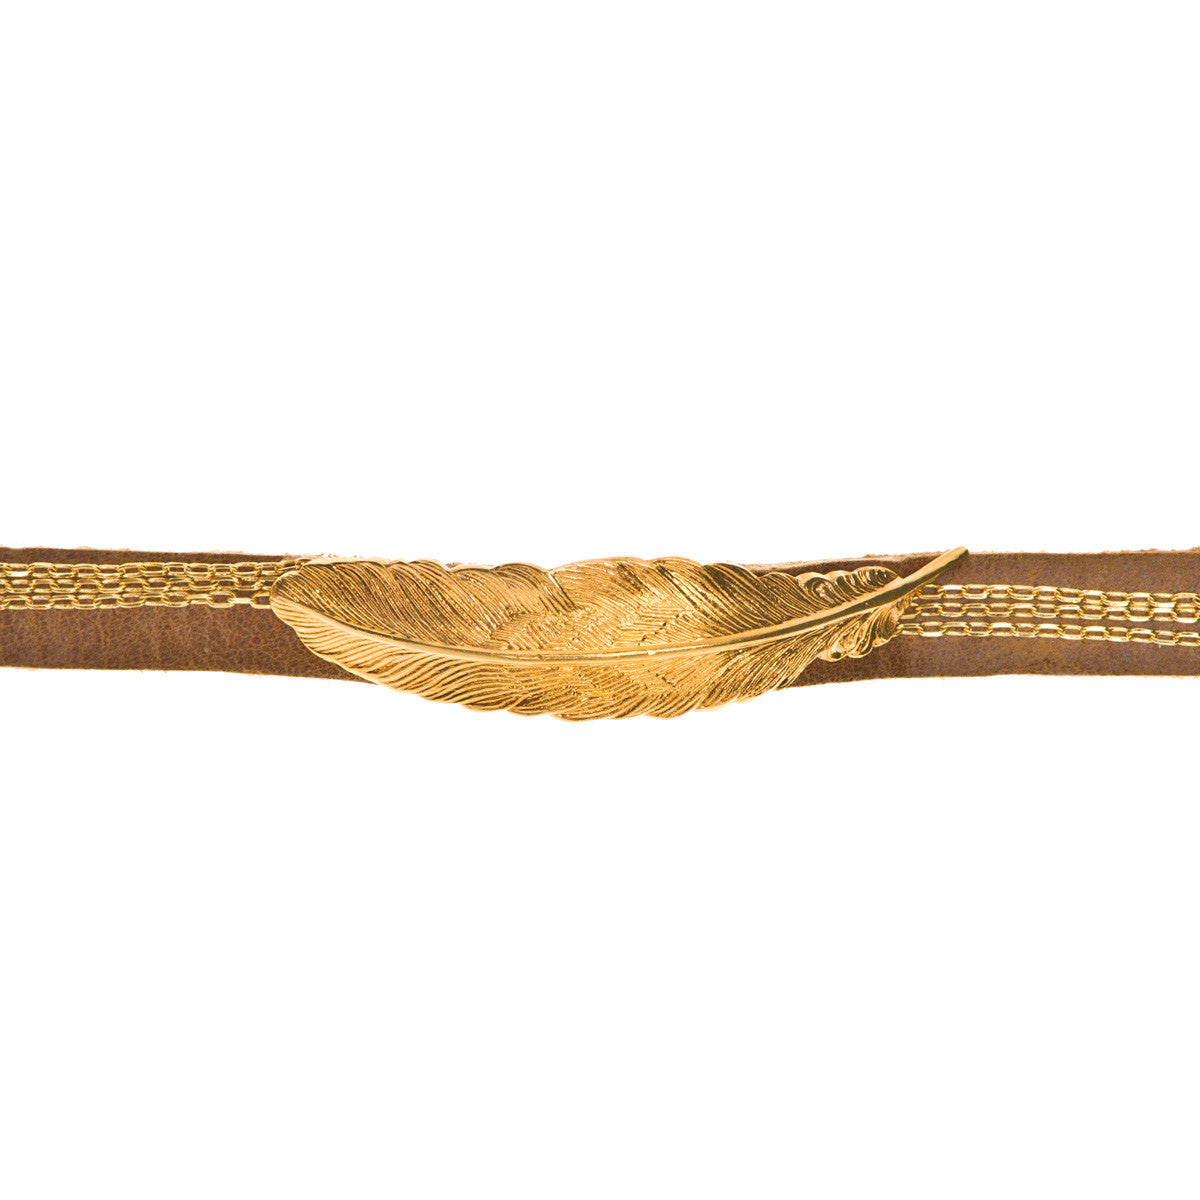 ADA Kairo Gold Feather Charm on Argentinean Tan Leather Bracelet